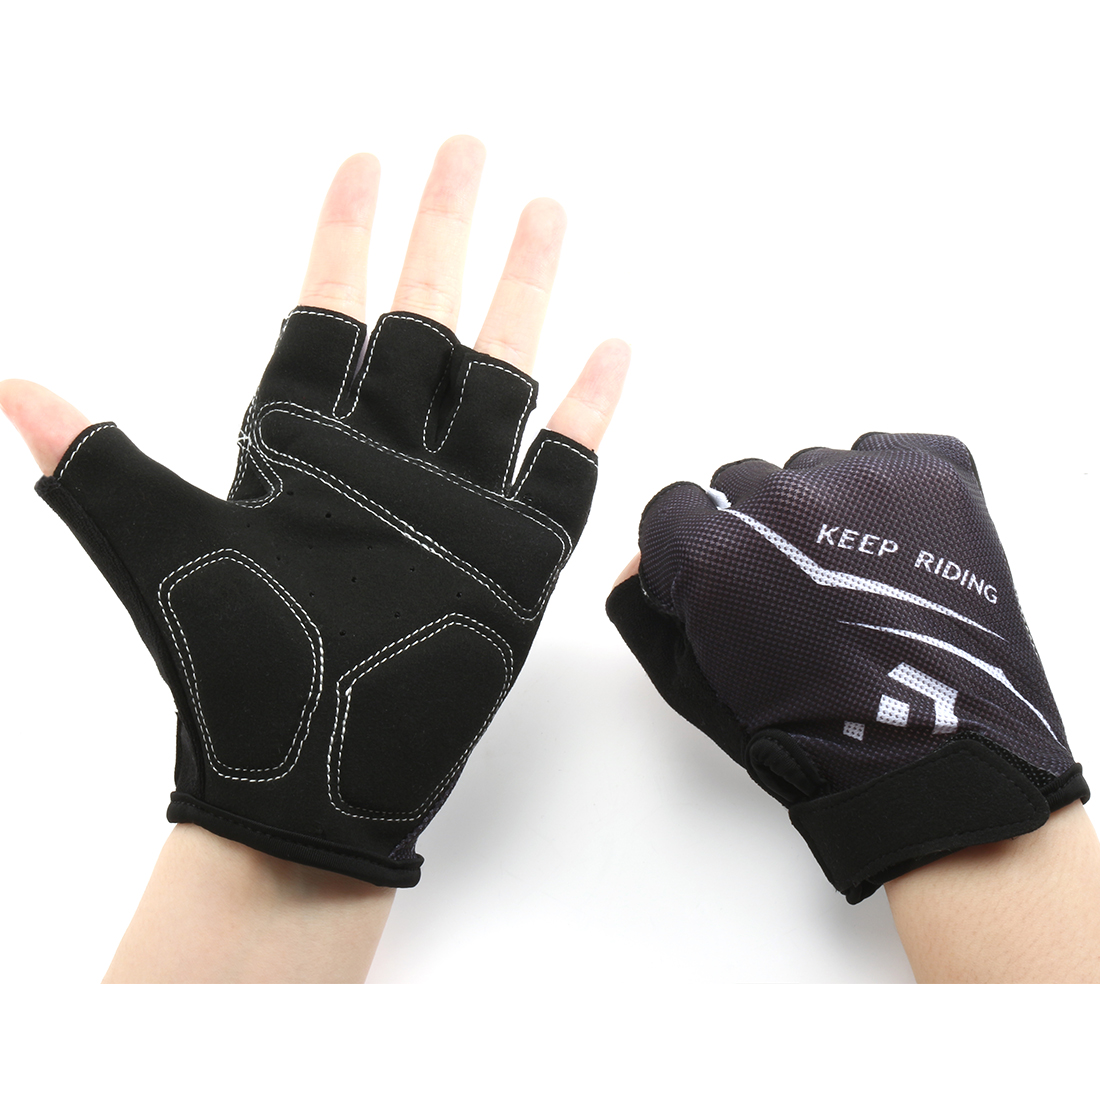 Outdoor Elasticized Fabric Sports Exercise Half Finger Cycling Gloves Palm Support Pair (White XL)